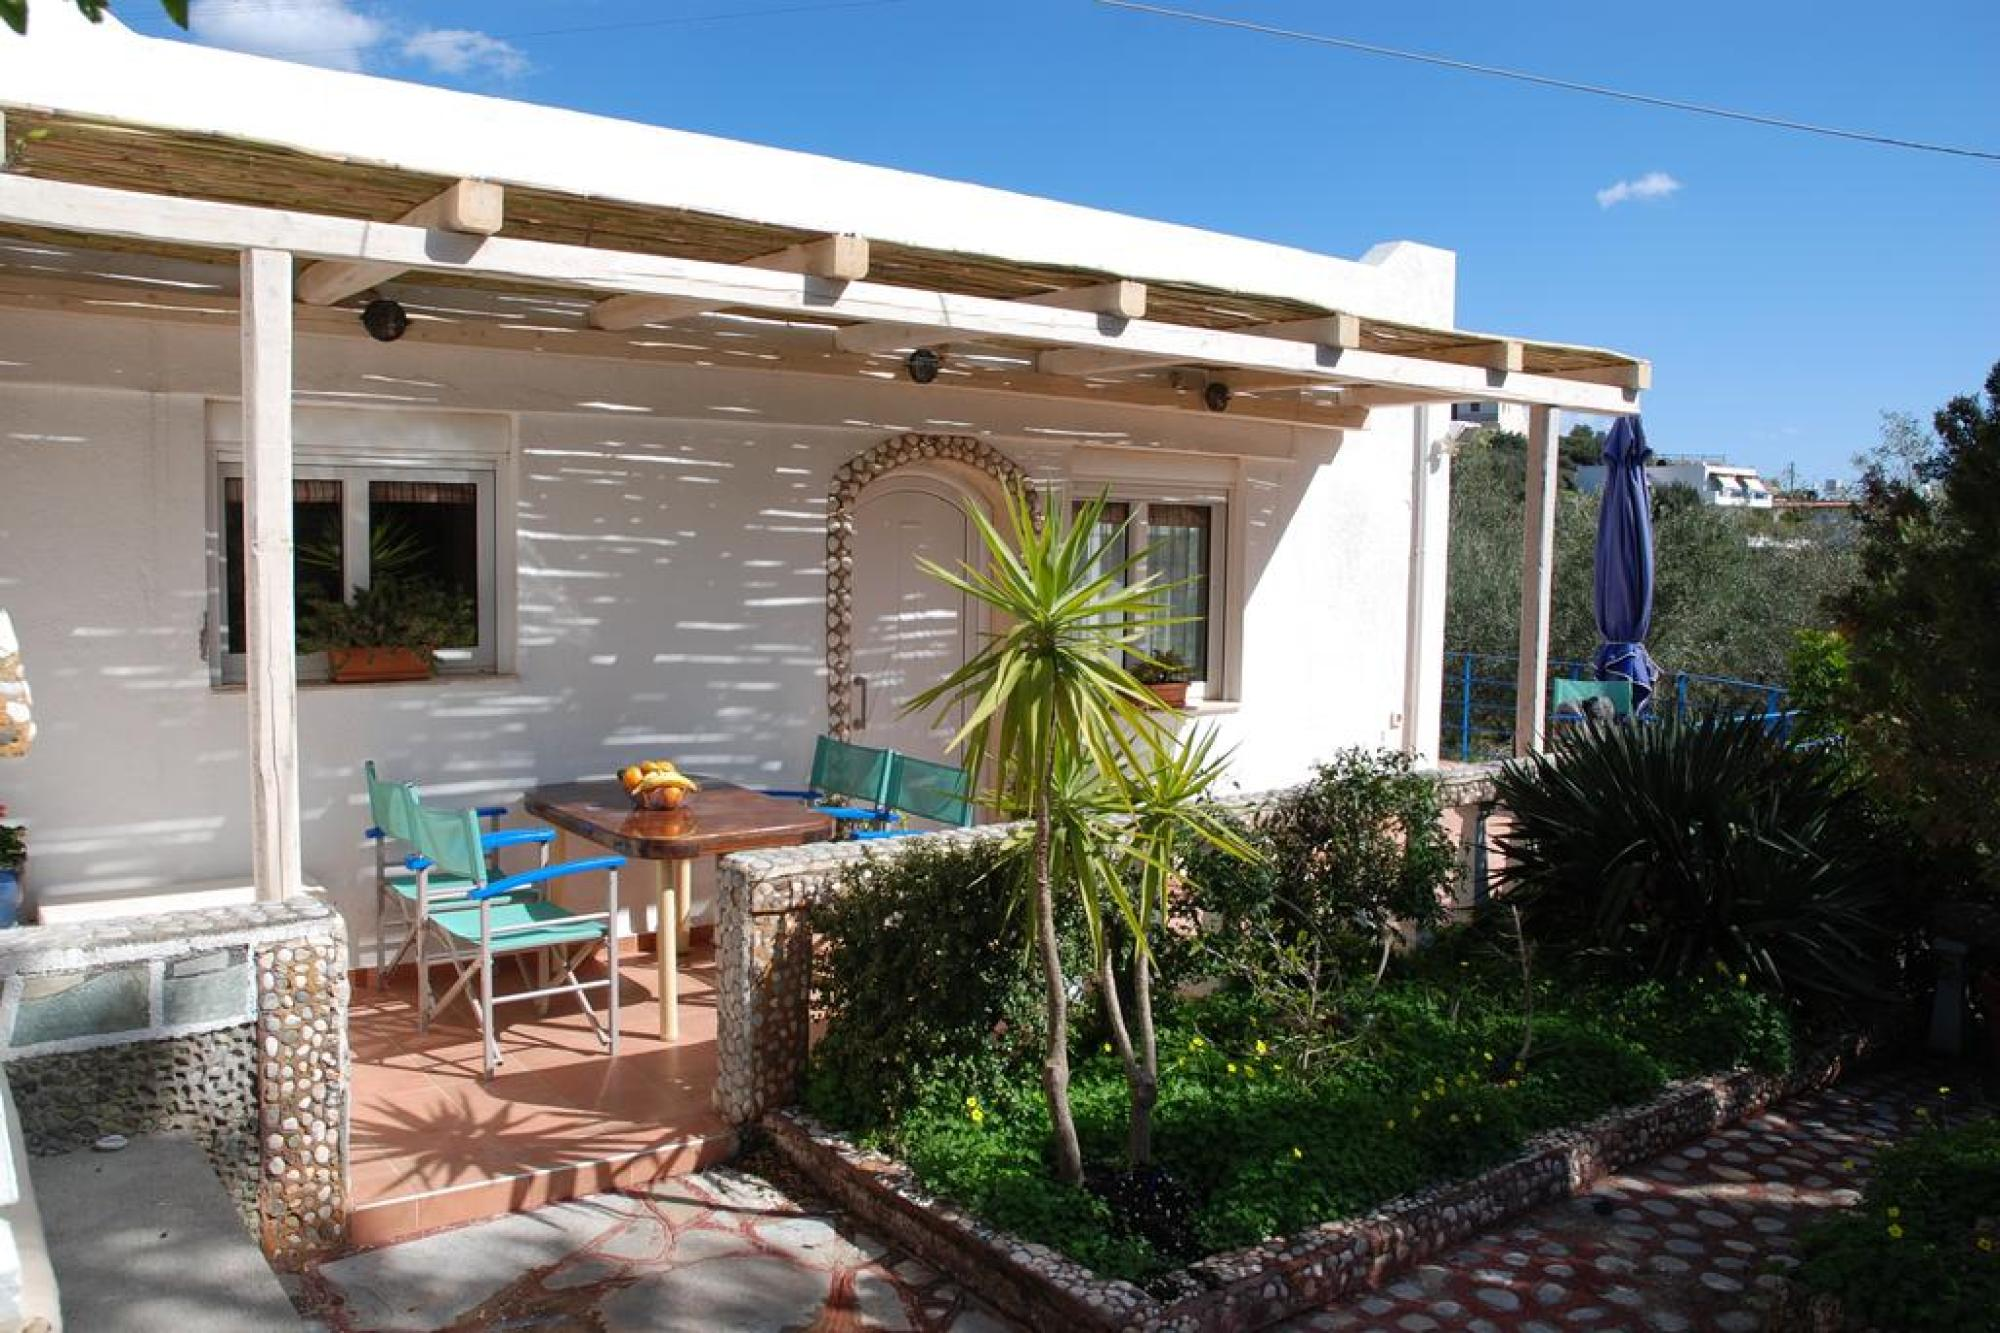 3 bedroom semidetached villa plus guest apt on private land in desired location.